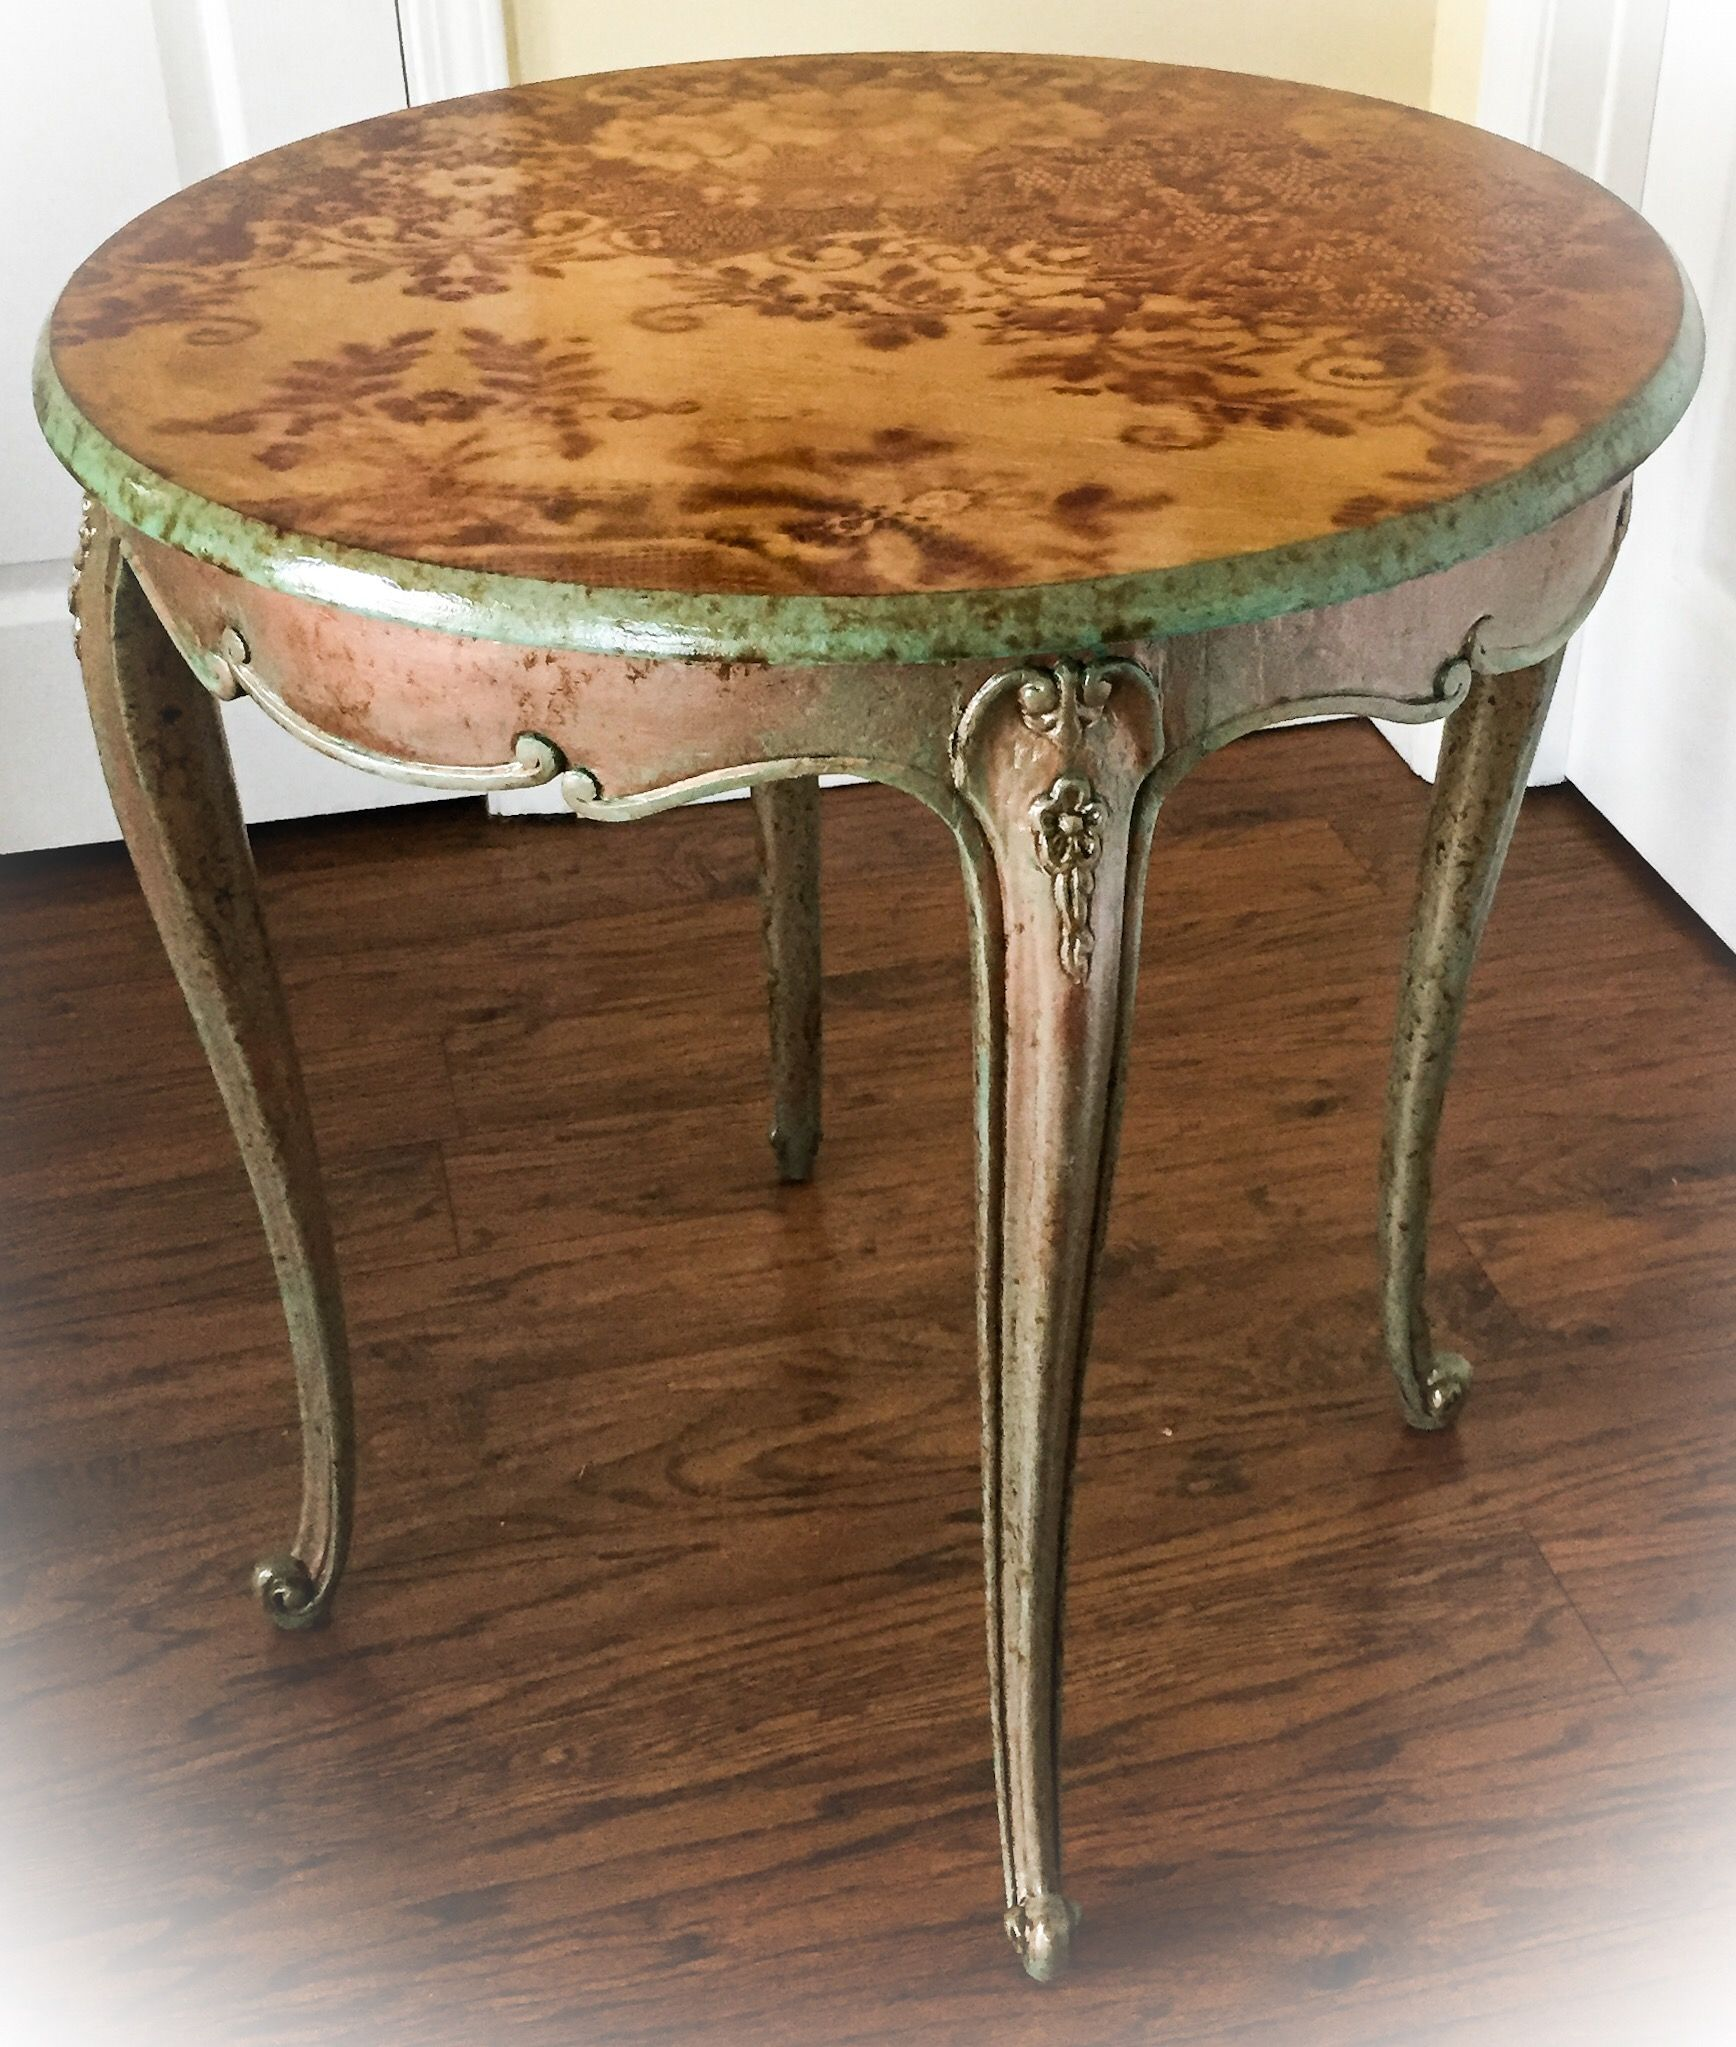 antique accent table copper patina stained wood end tall shabby chic wall ancient shabti for dining room sets rustic plans diy circular tablecloths linen making barn door metal